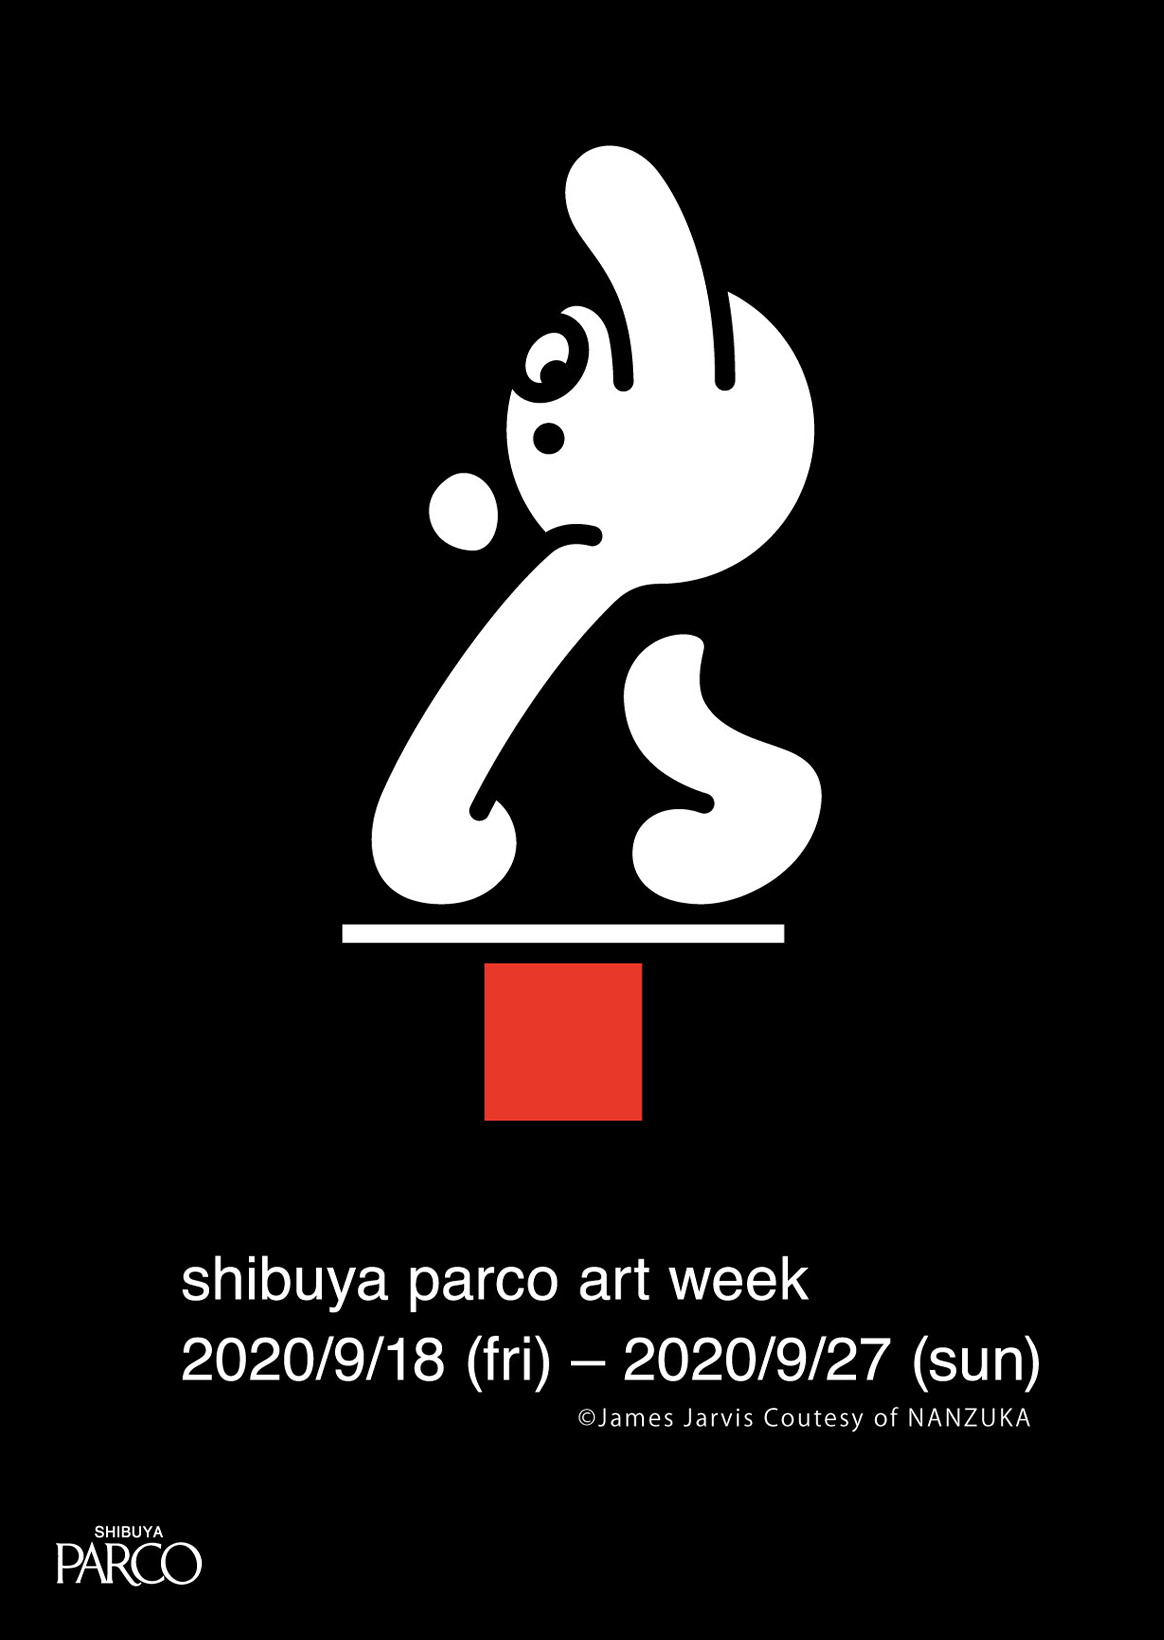 SHIBUYA PARCO ART WEEK | The autumn arrival of art. Ten days when Shibuya PARCO is stained with art.